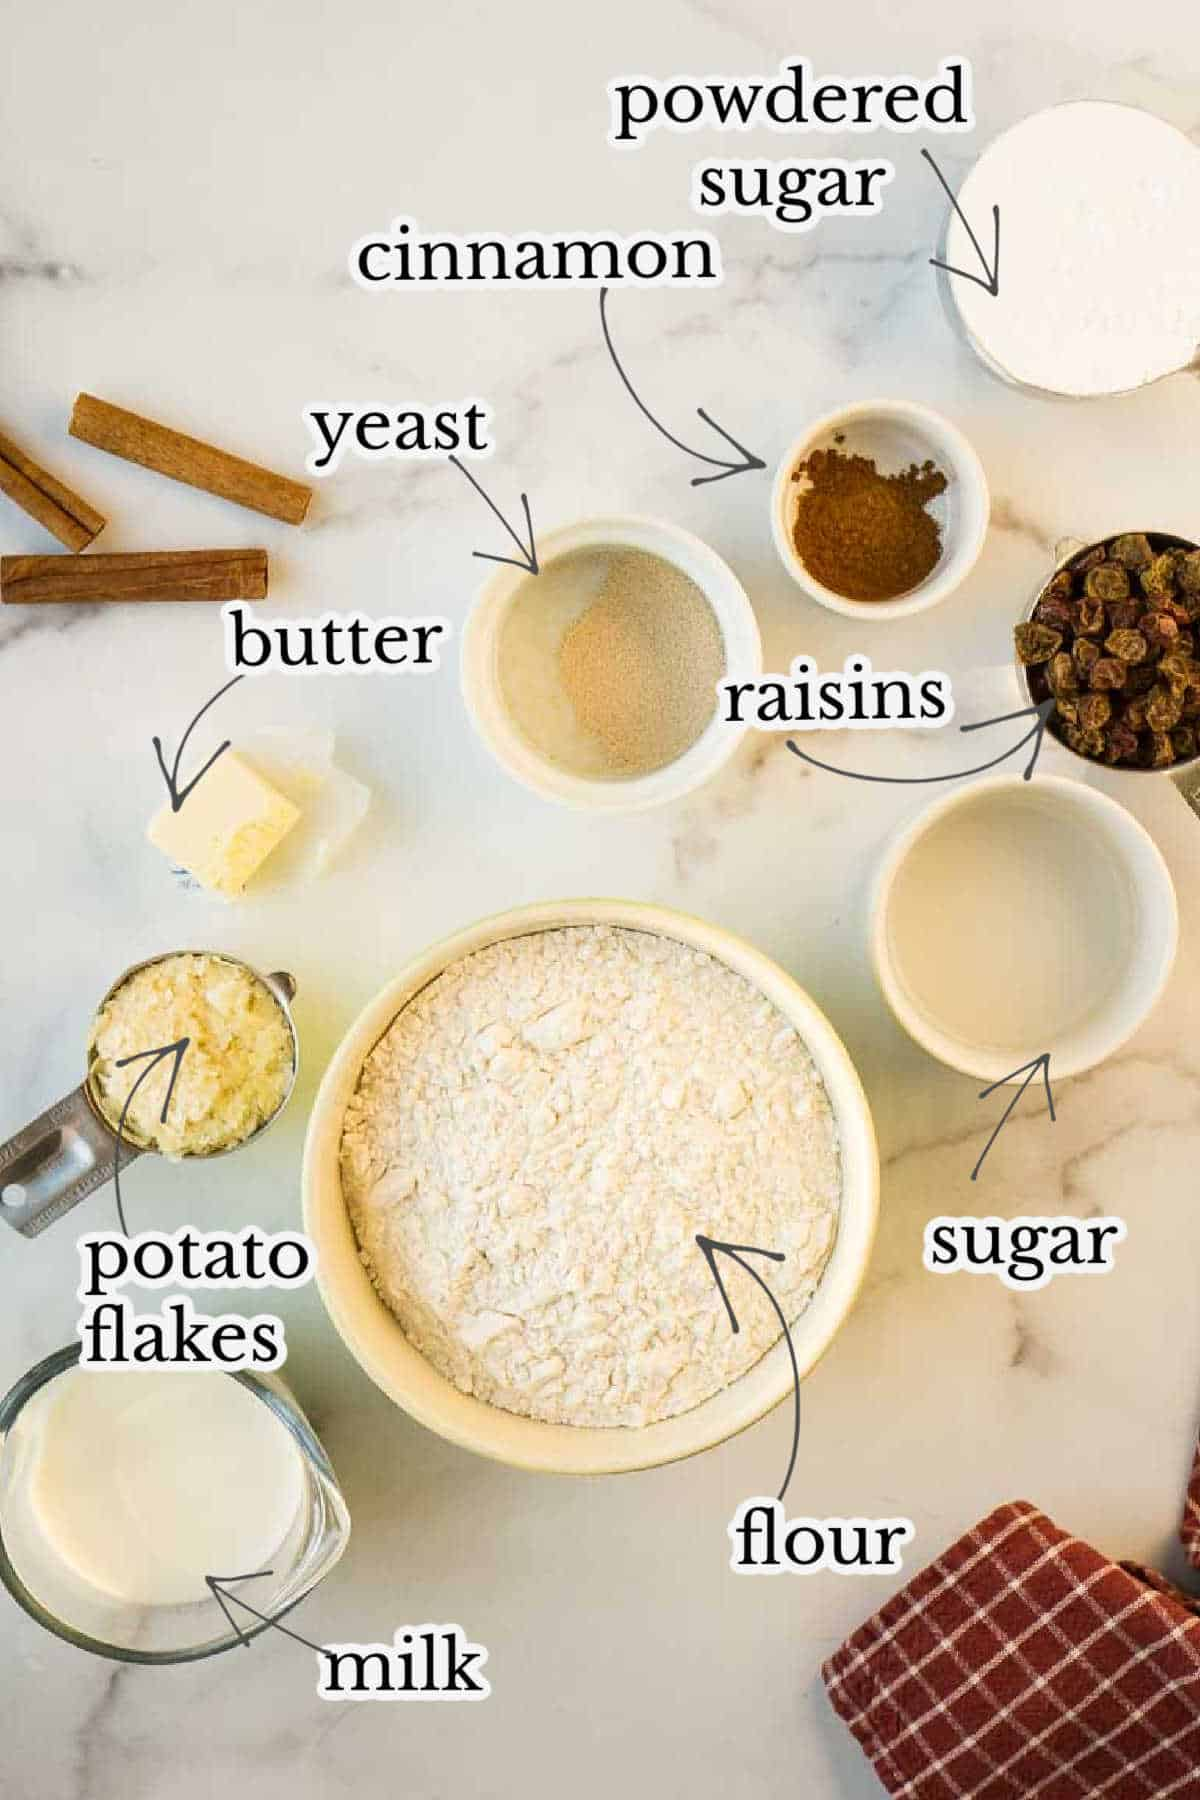 flour, sugar, cinnamon, yeast, raisins, butter, and other ingredients in small bowls